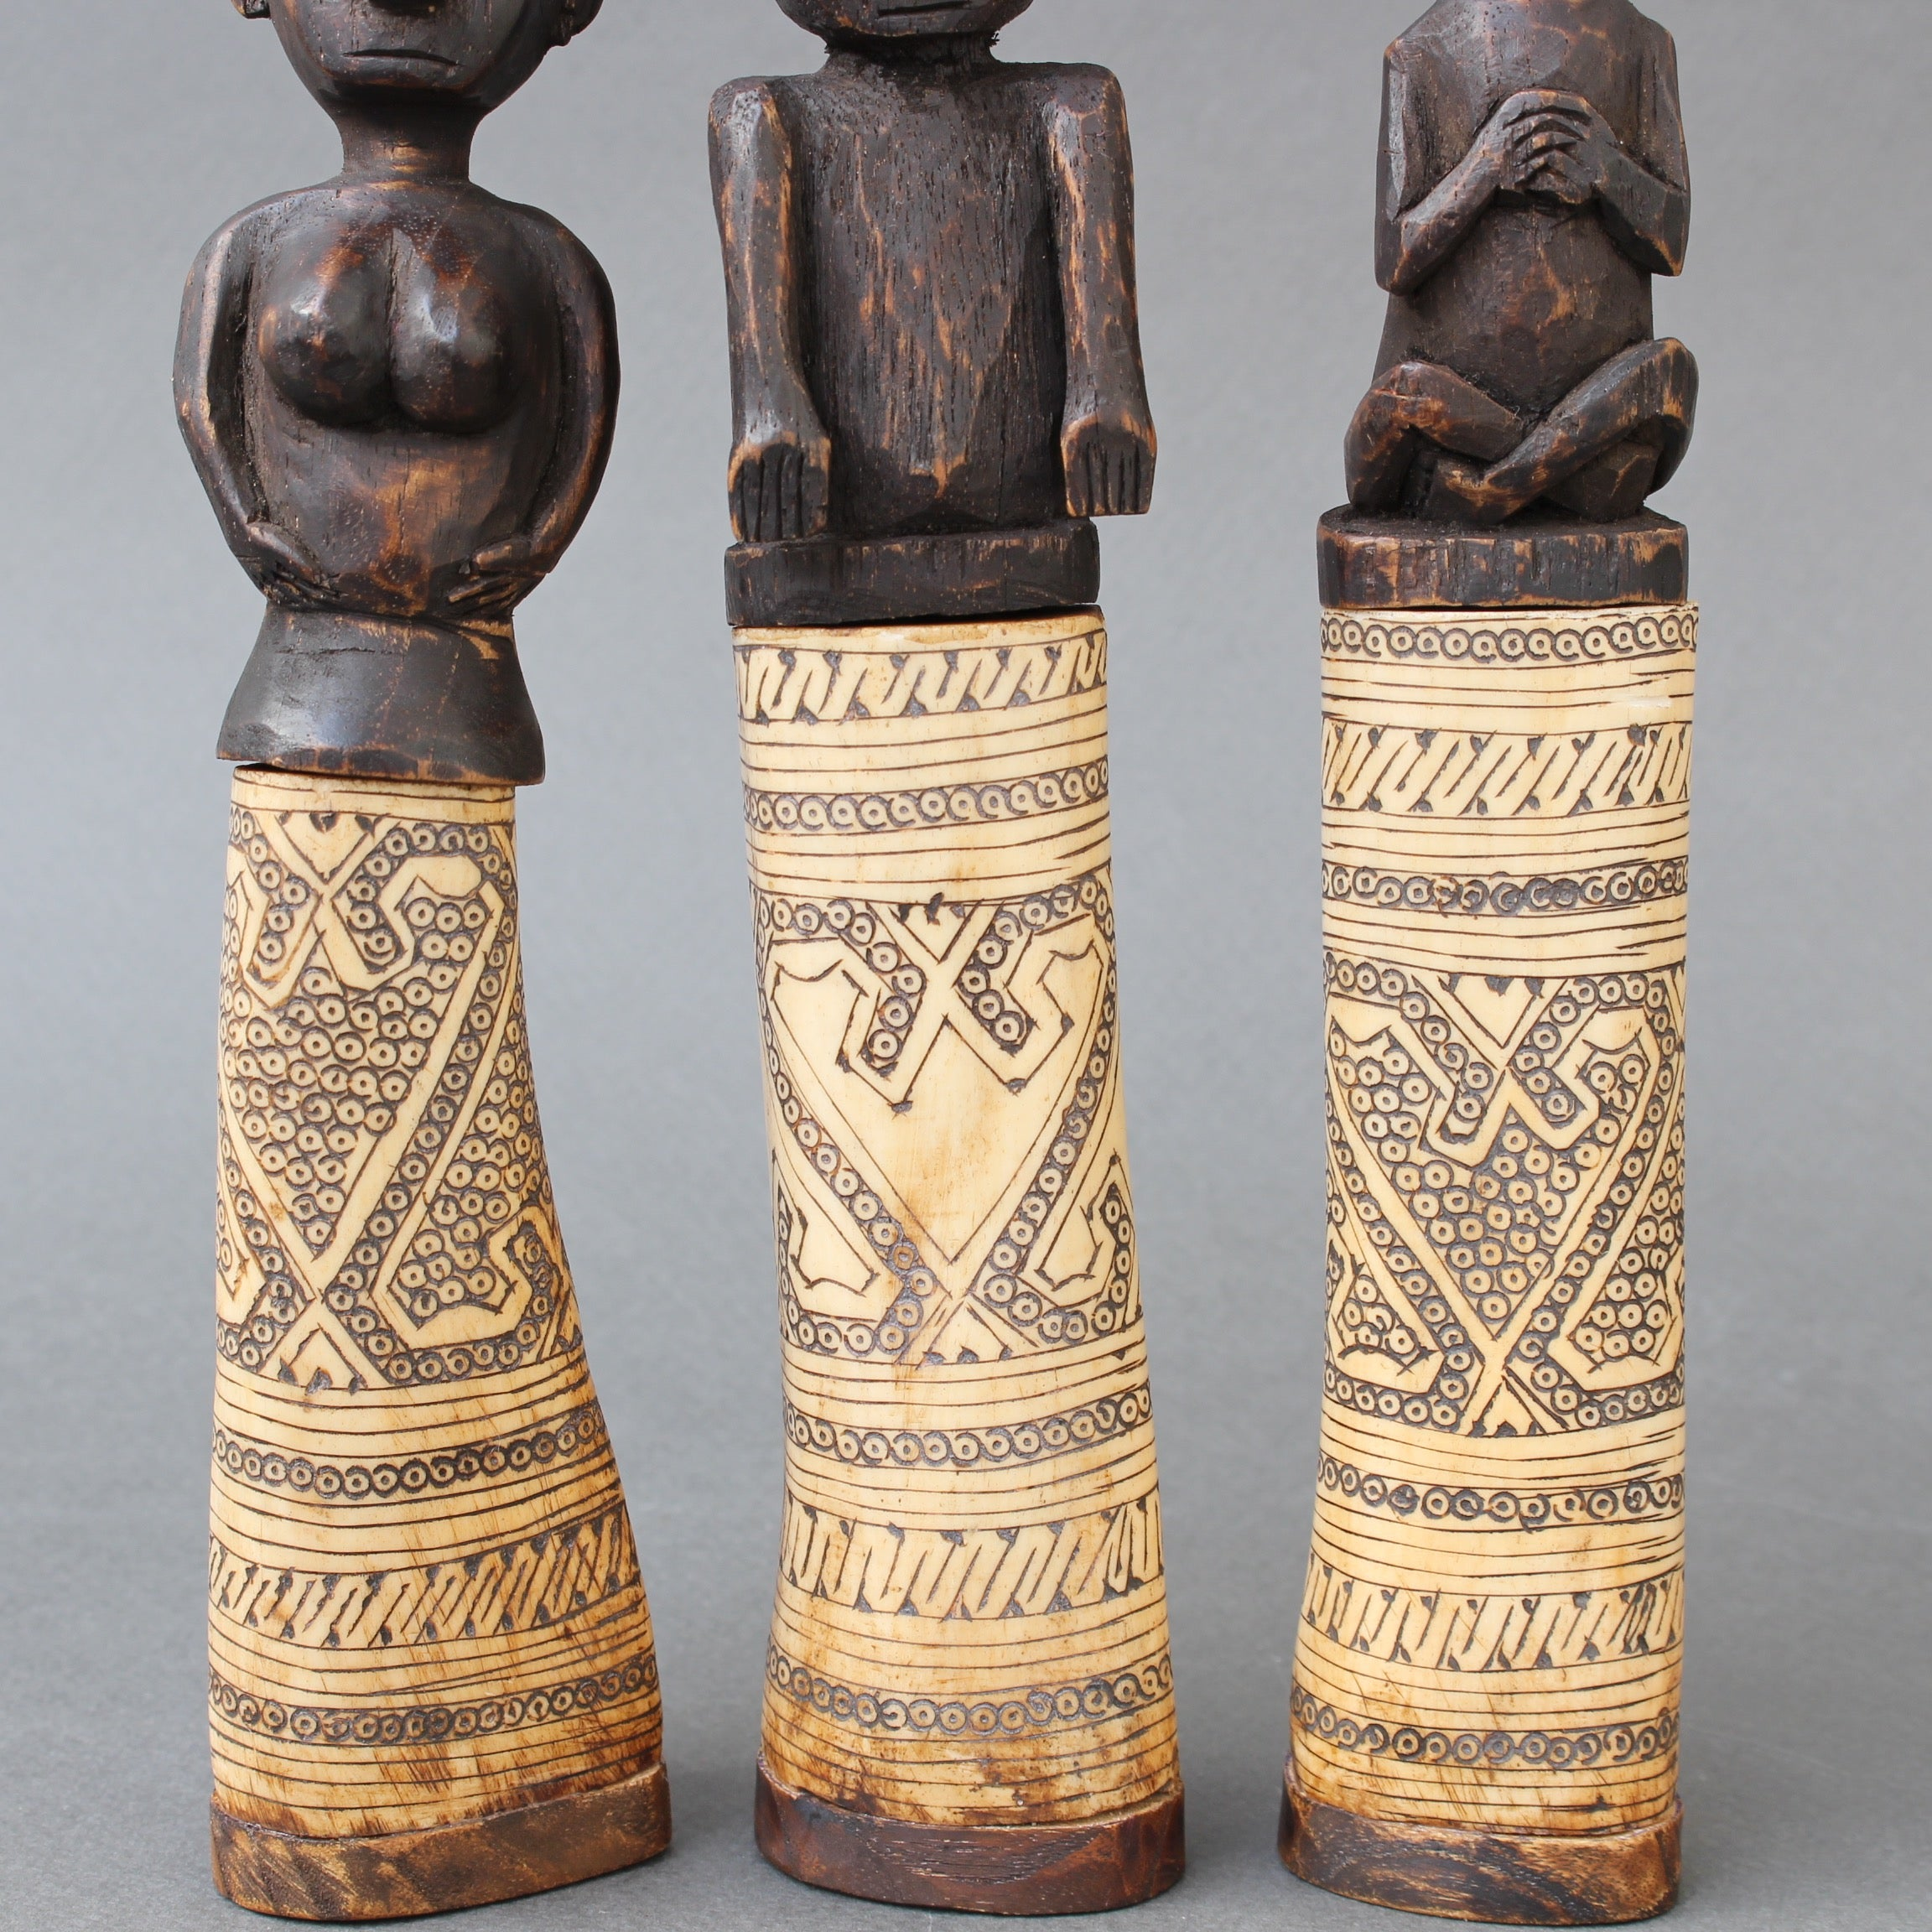 Set of Five Wood and Bone Lime Powder Holders for Betel Nut from W. Timor, Indonesia (circa 1940s - 60s)